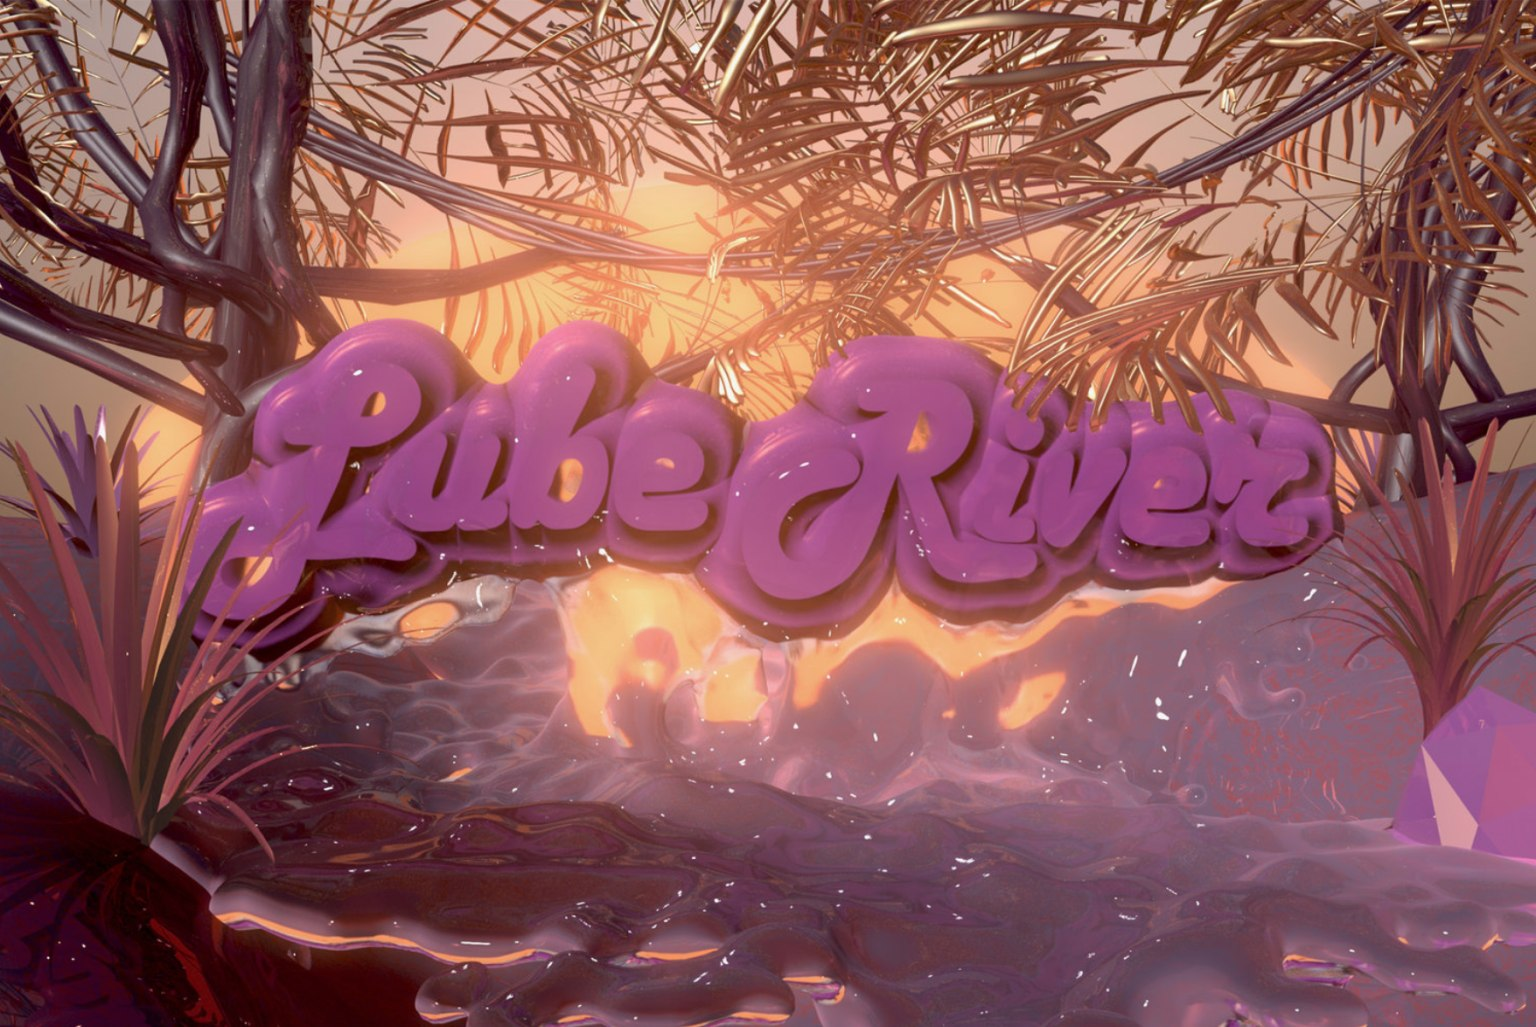 Lube River VR X Babeland